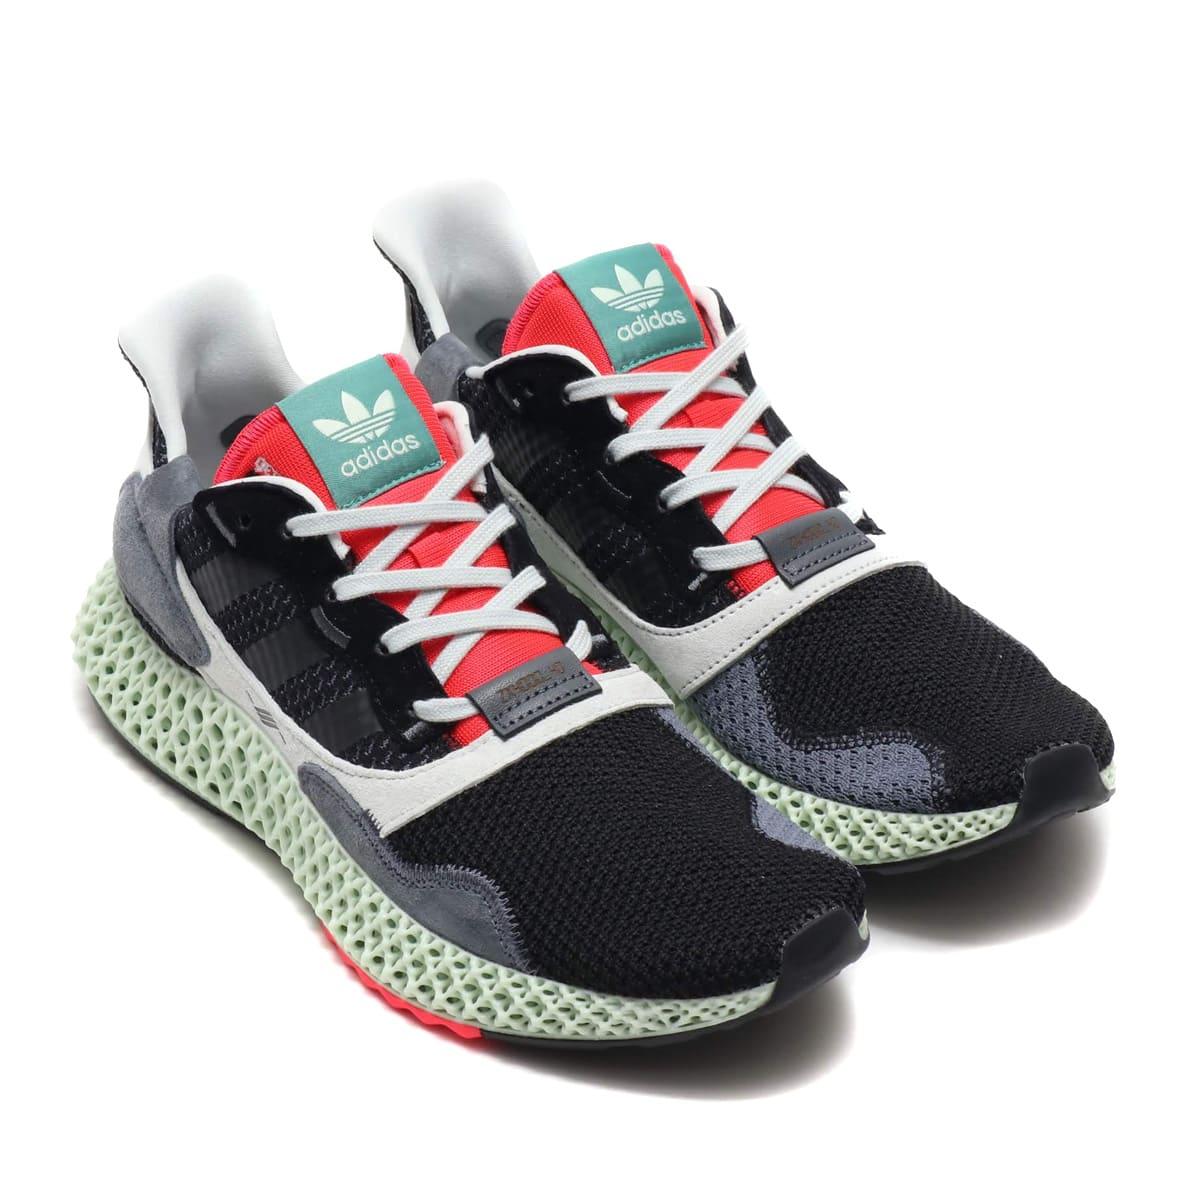 adidas ZX 4000 4D Core Black/Onix/Running White 19SS-S_photo_large